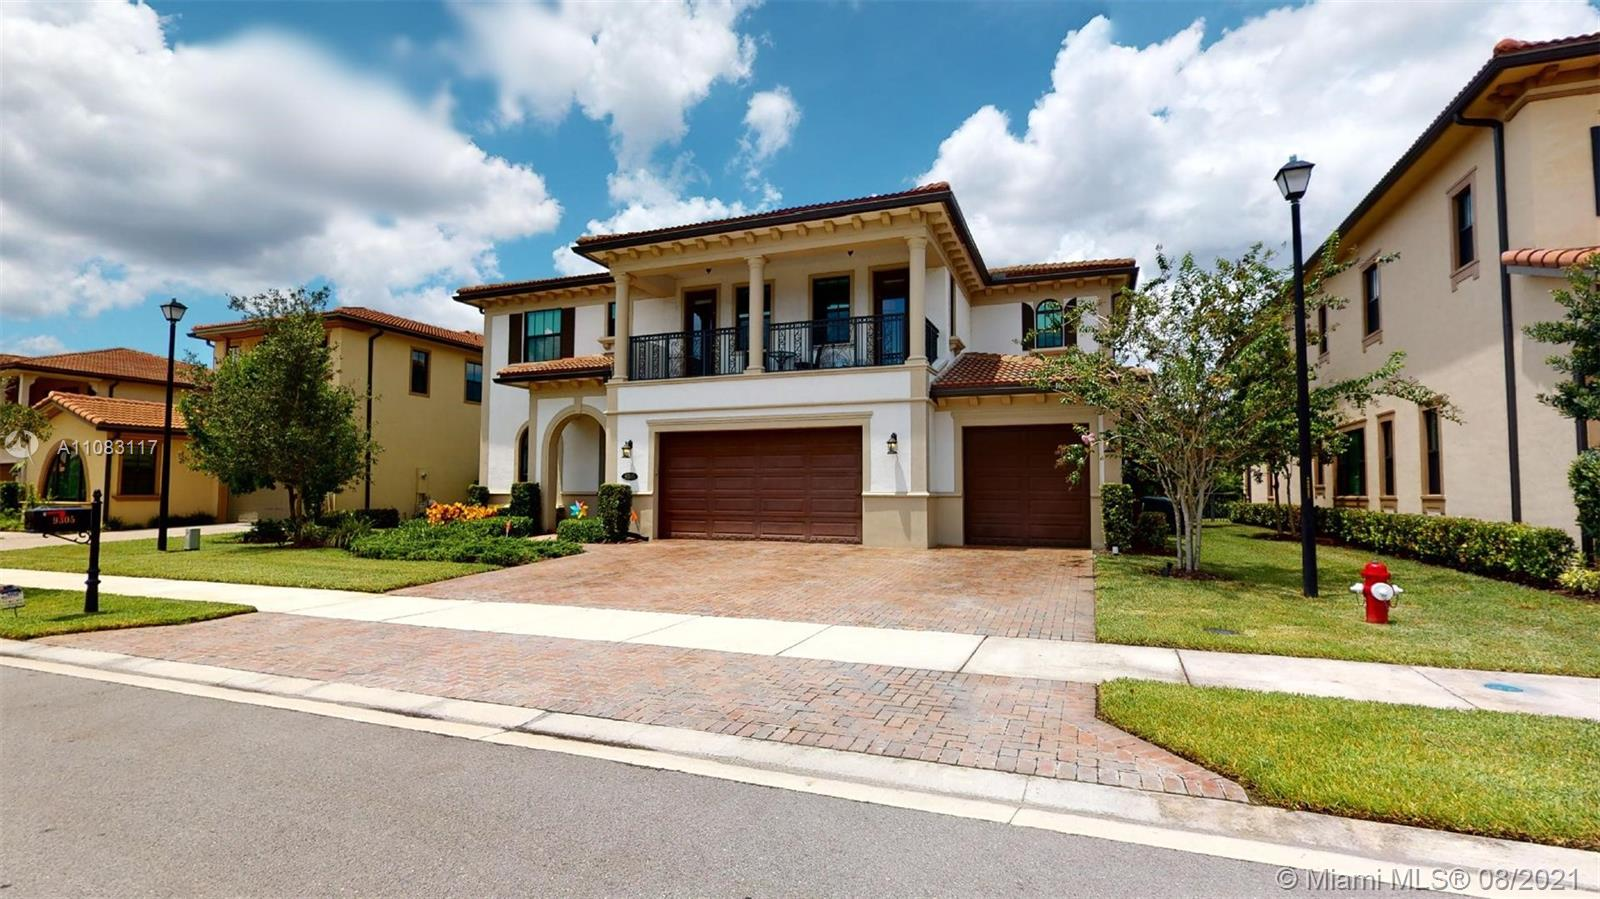 Listing A11083117 - Large Photo # 41